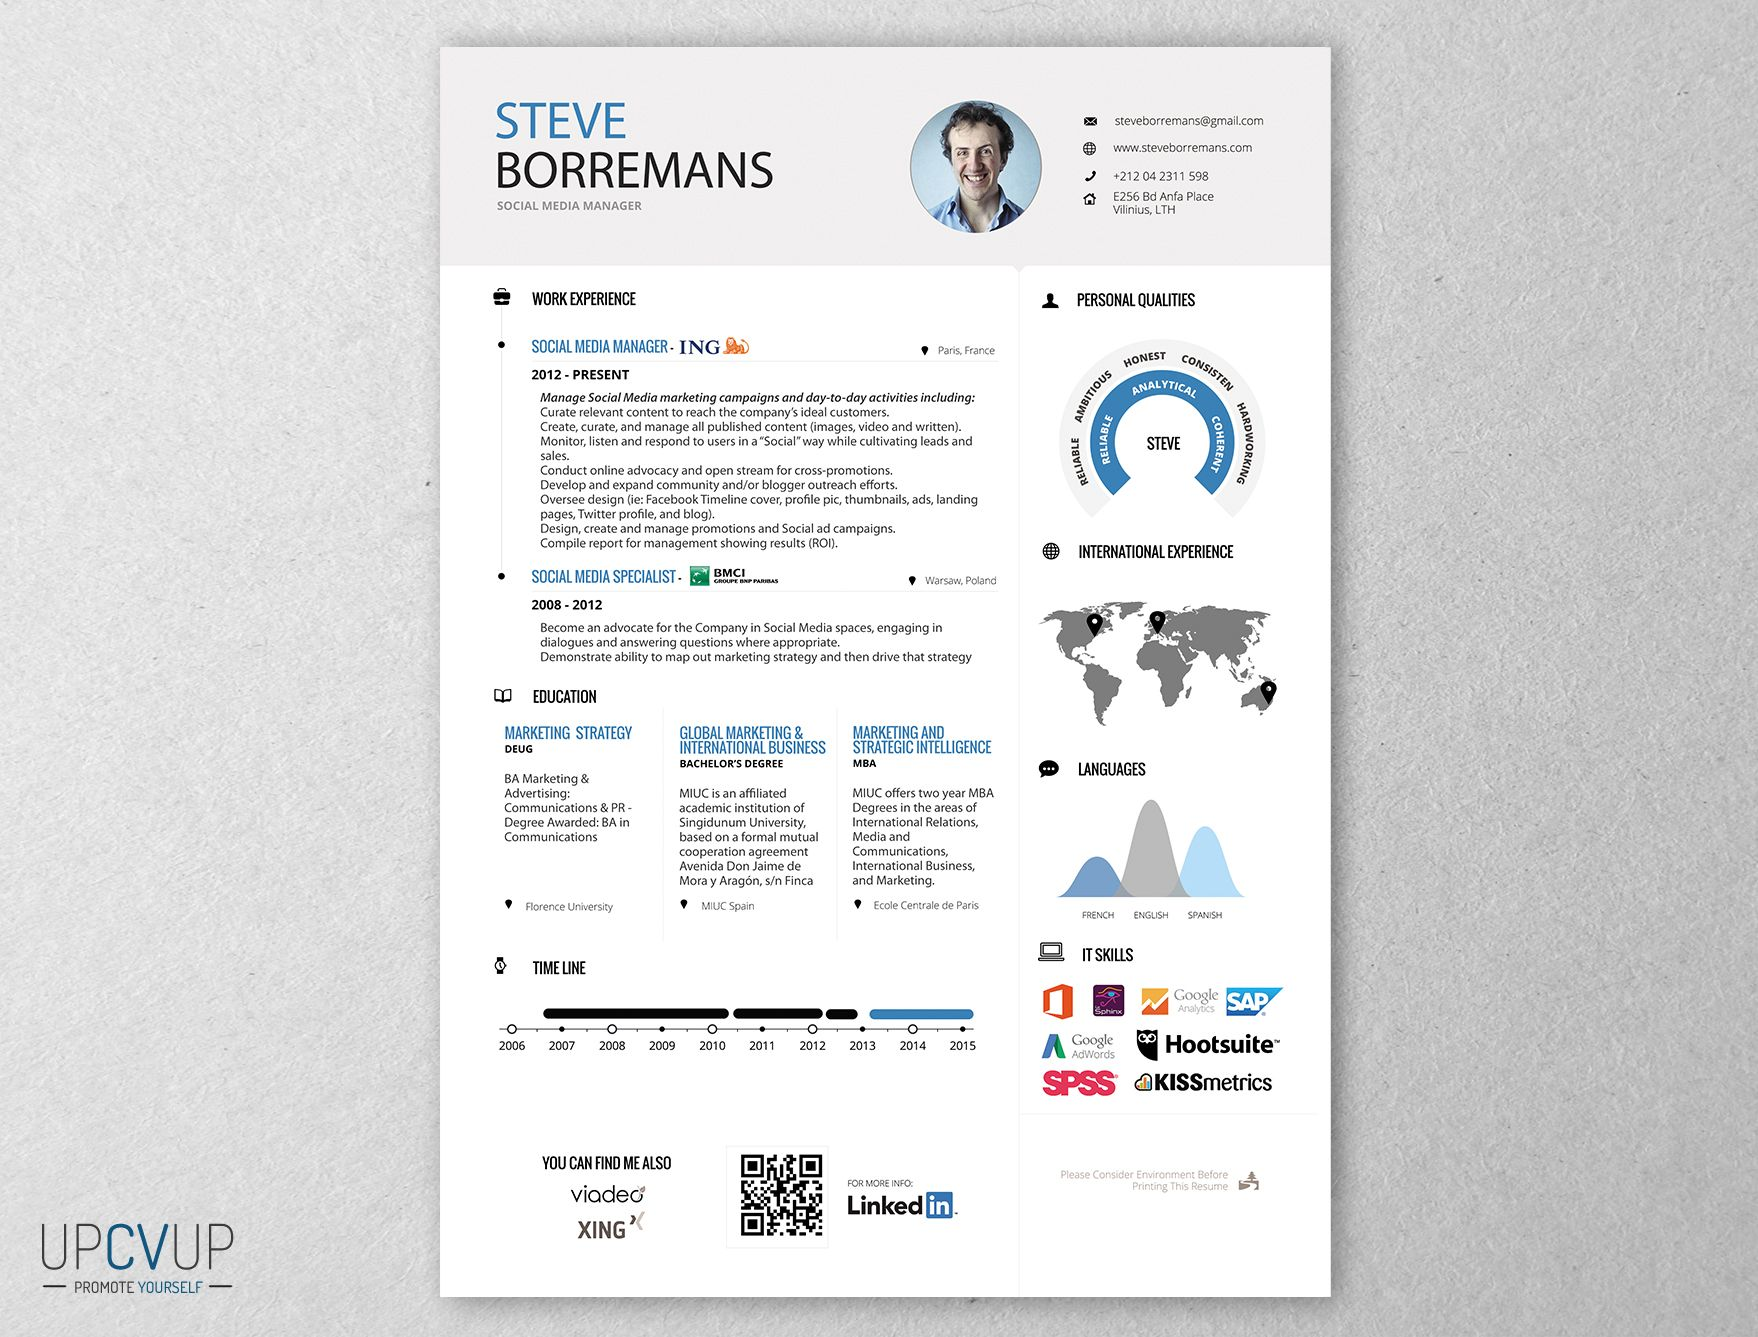 Social Media Manager CV Moderne   UPCVUP  Resume Social Media